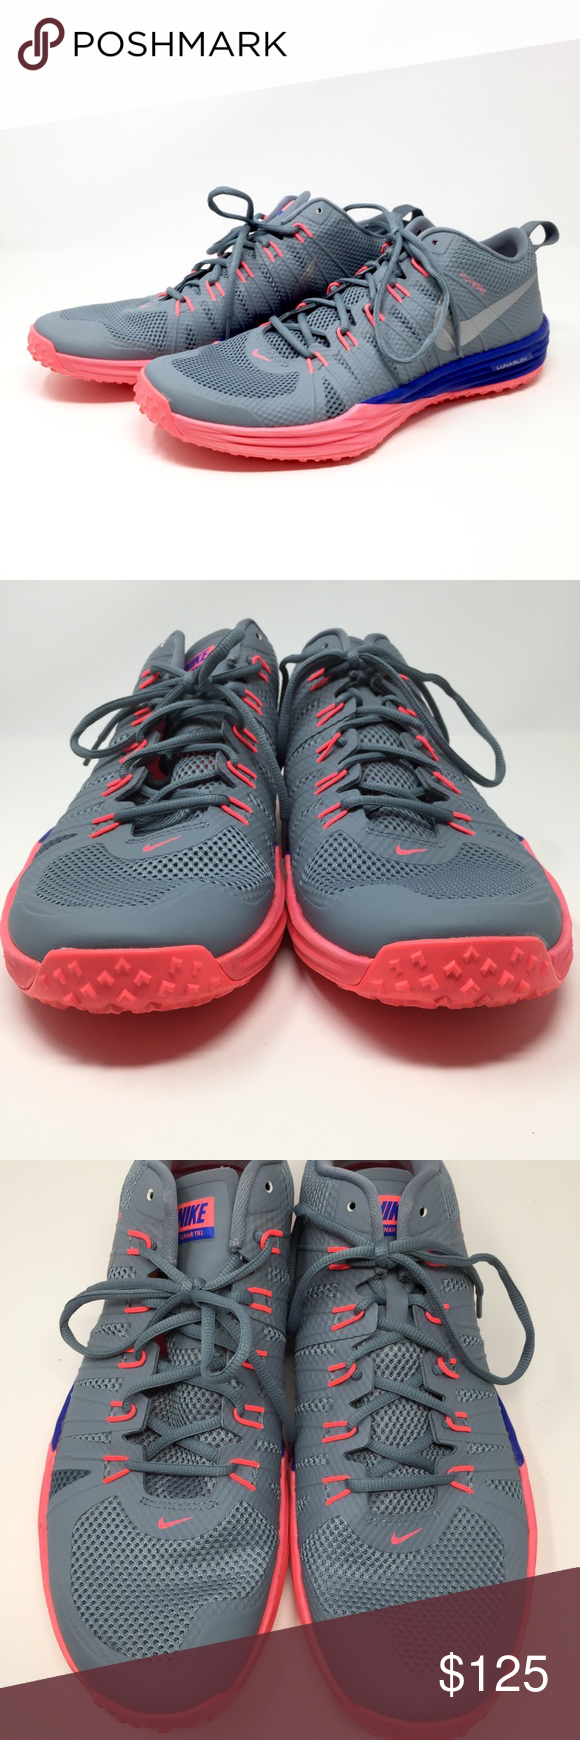 db94614b2b02 NEW Nike Lunar TR1 Sneakers VERY RARE Men s 13 This is a brand new without  the